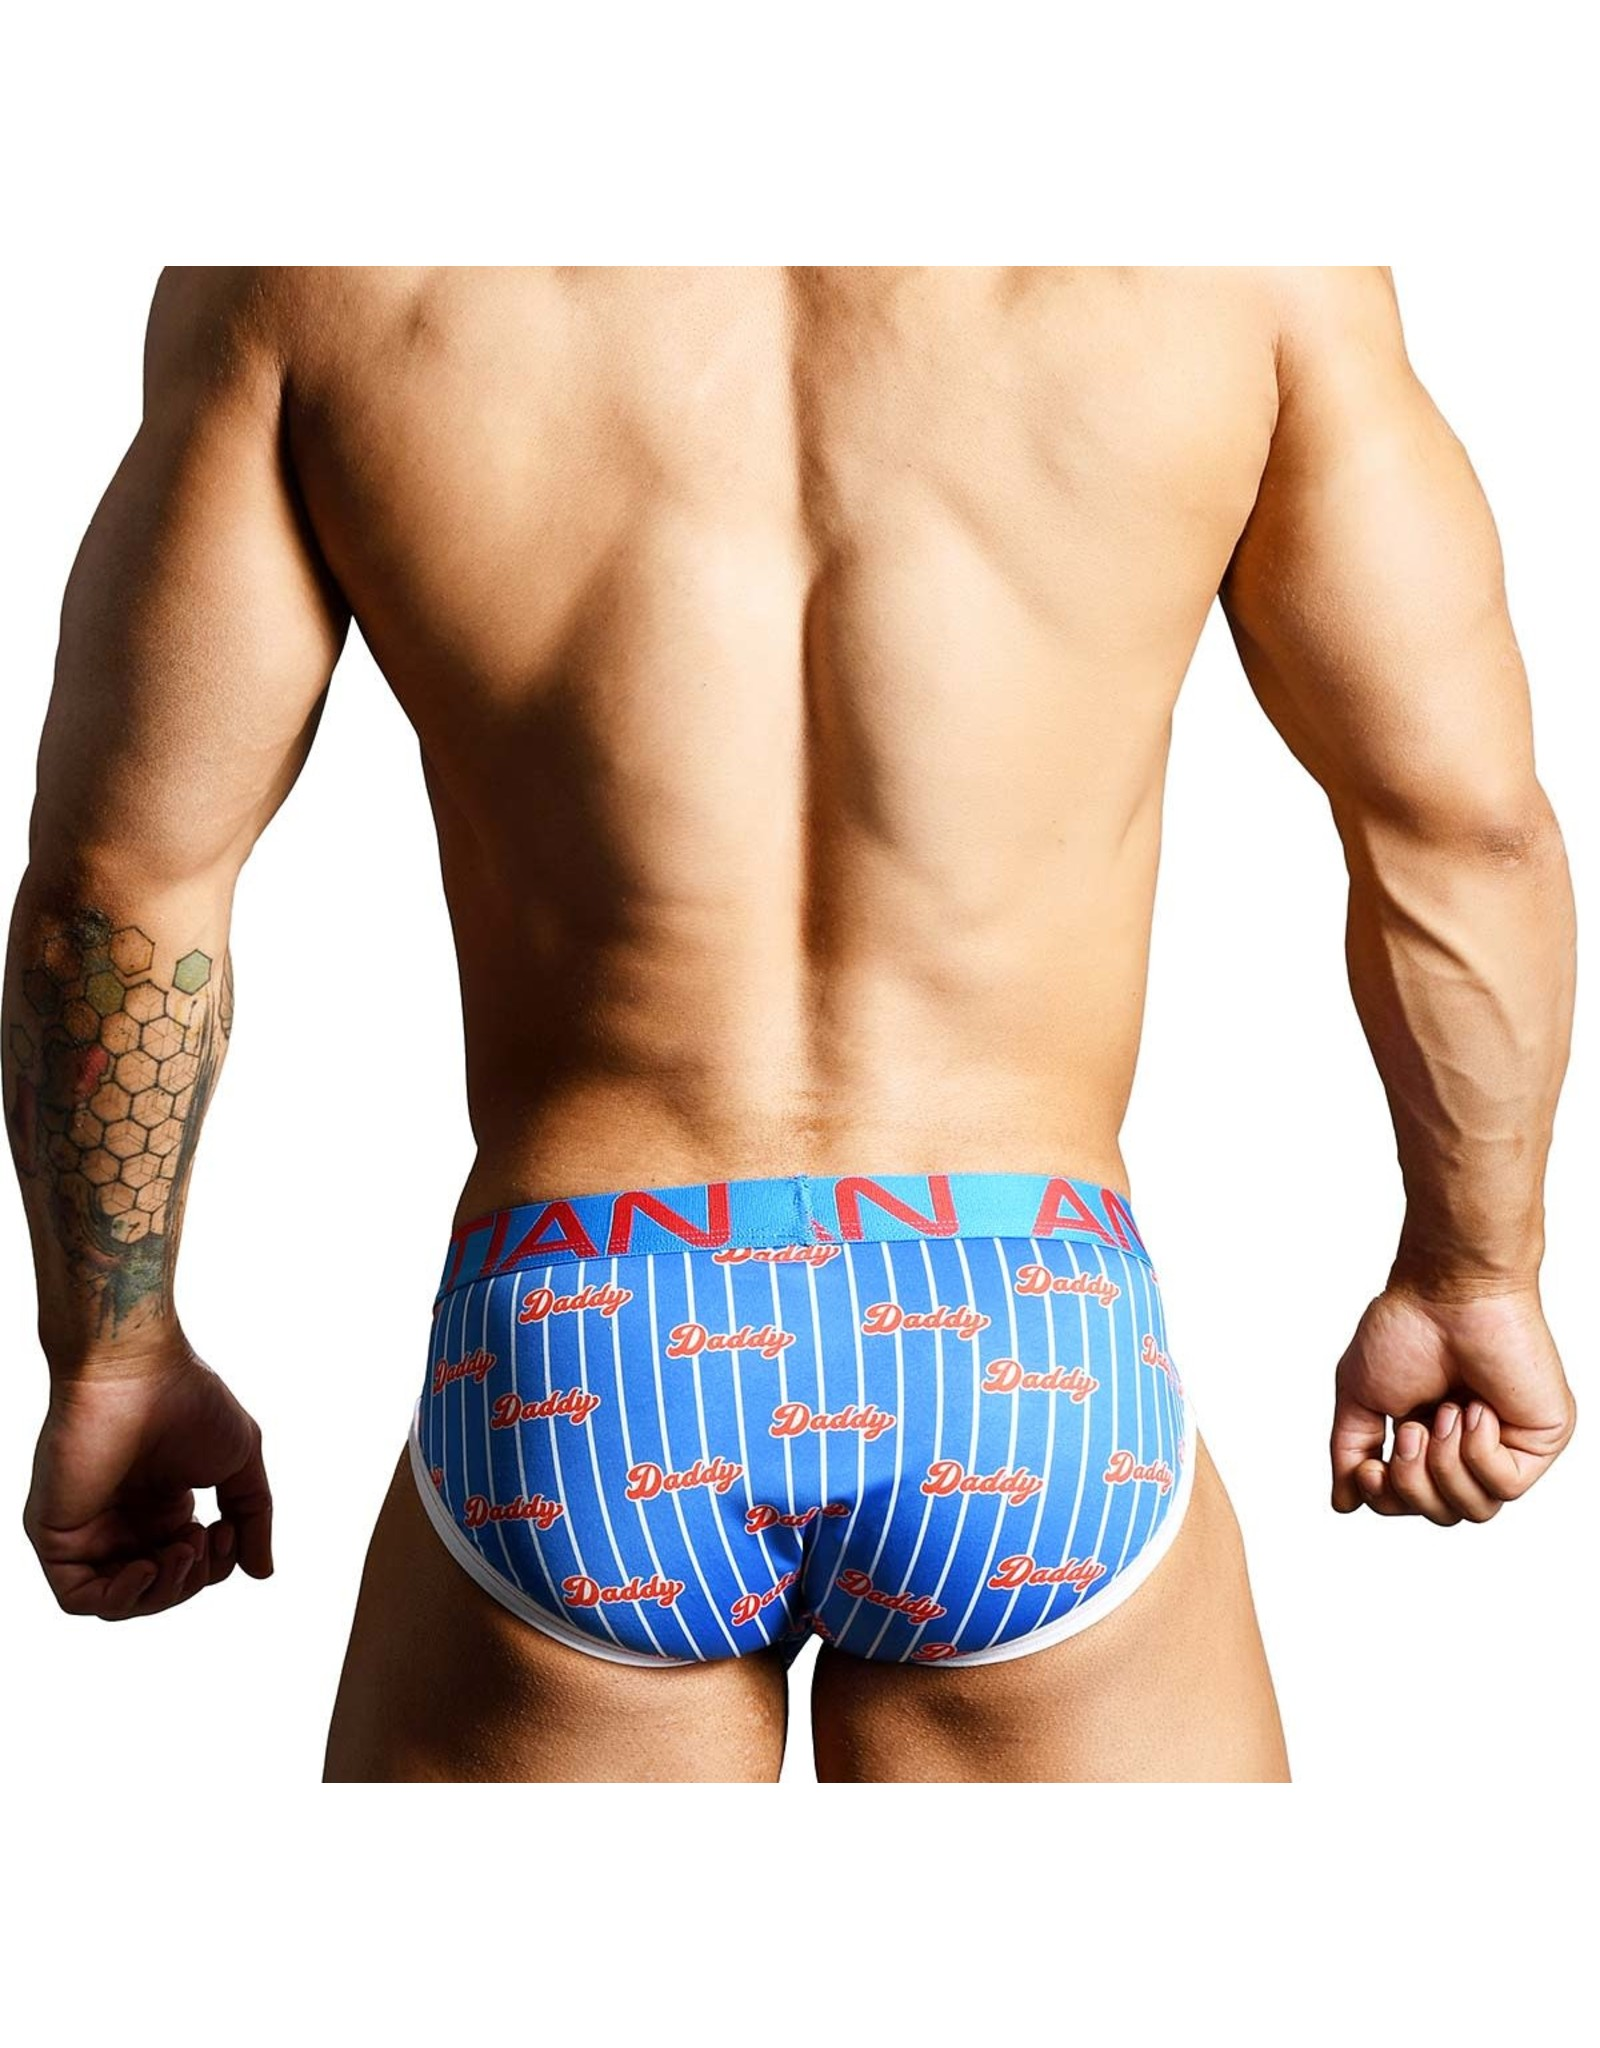 ANDREW CHRISTIAN ANDREW CHRISTIAN DADDY ALMOST NAKED BRIEF LARGE